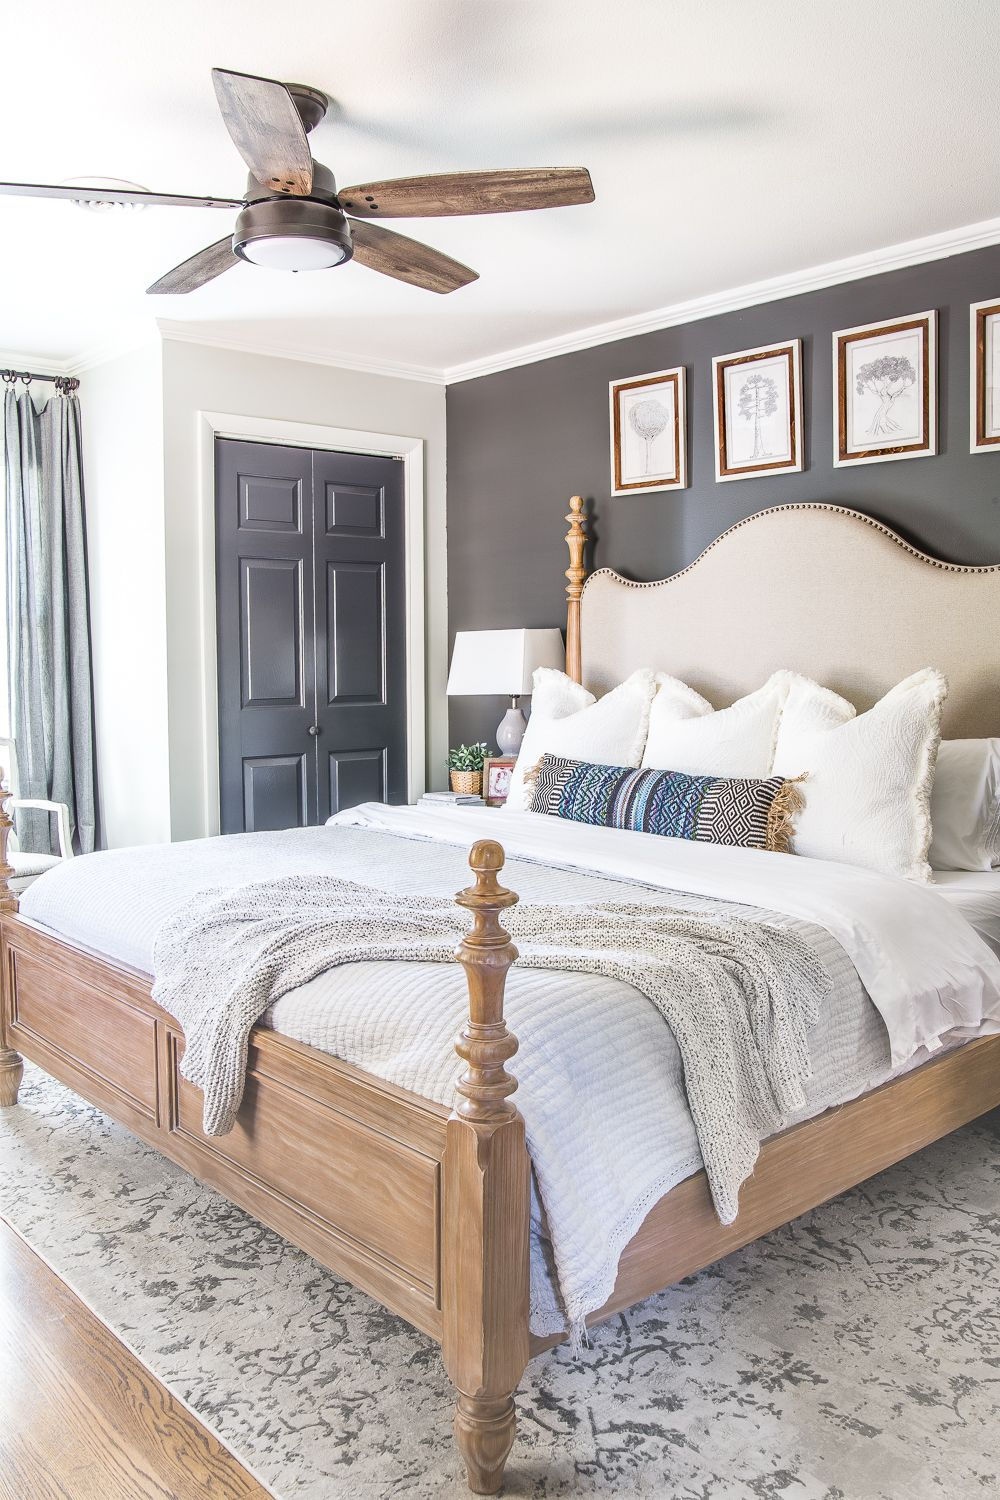 20 Gorgeous Modern Ceiling Fans Rustic Master Bedroom Master Bedroom Lighting Modern Bedroom